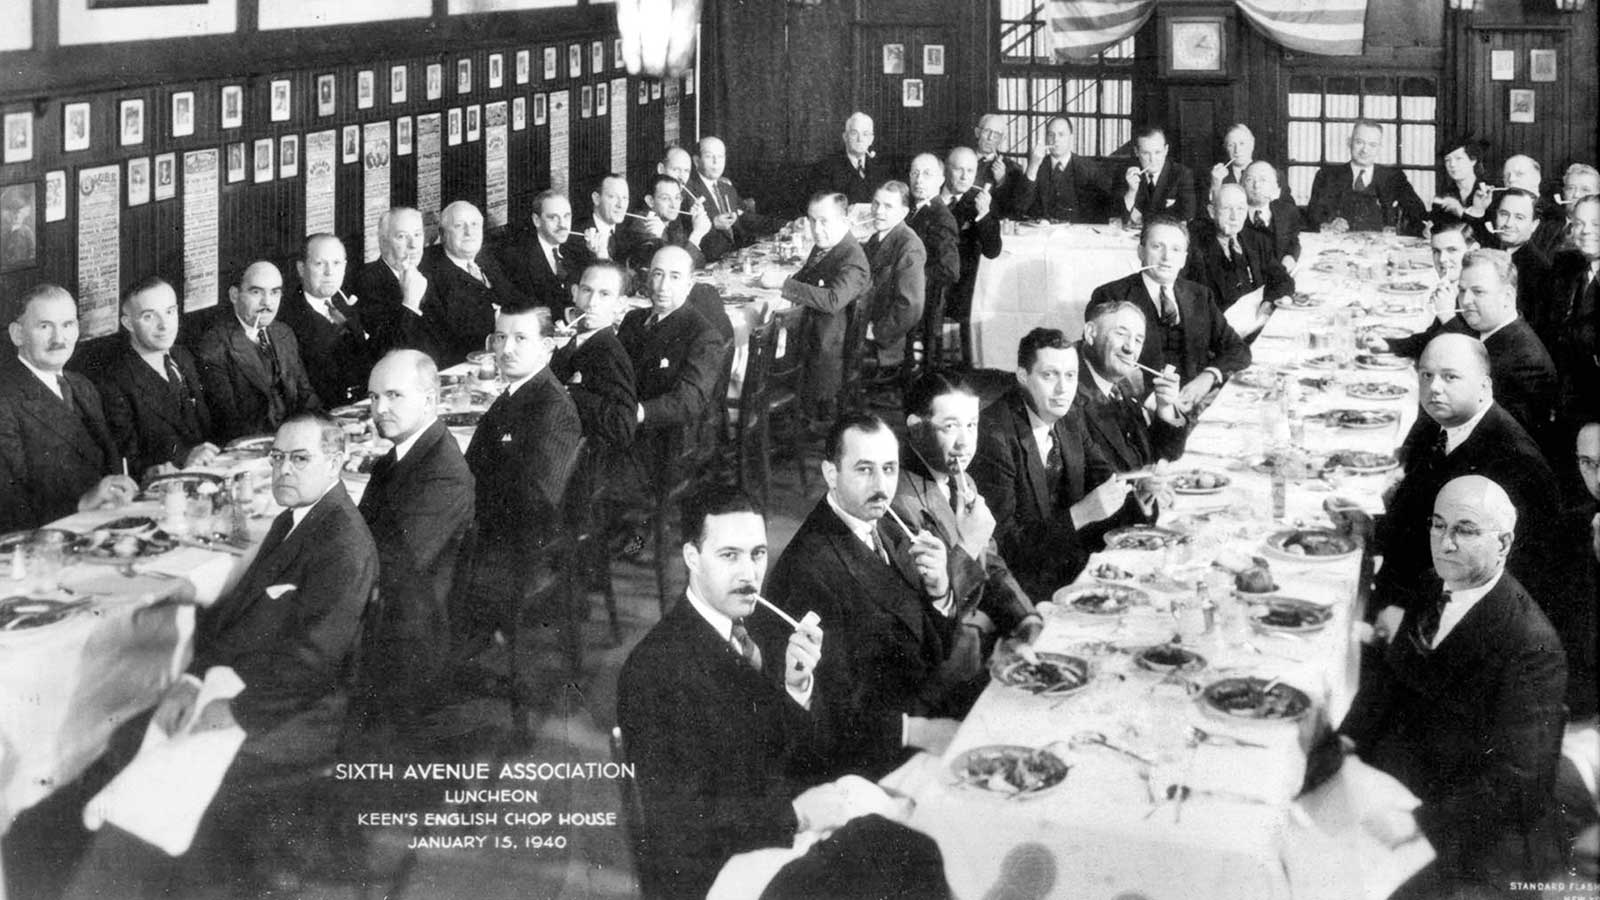 Well-dressed Keens patrons chewing on their churchwardens at a 1940 gathering.